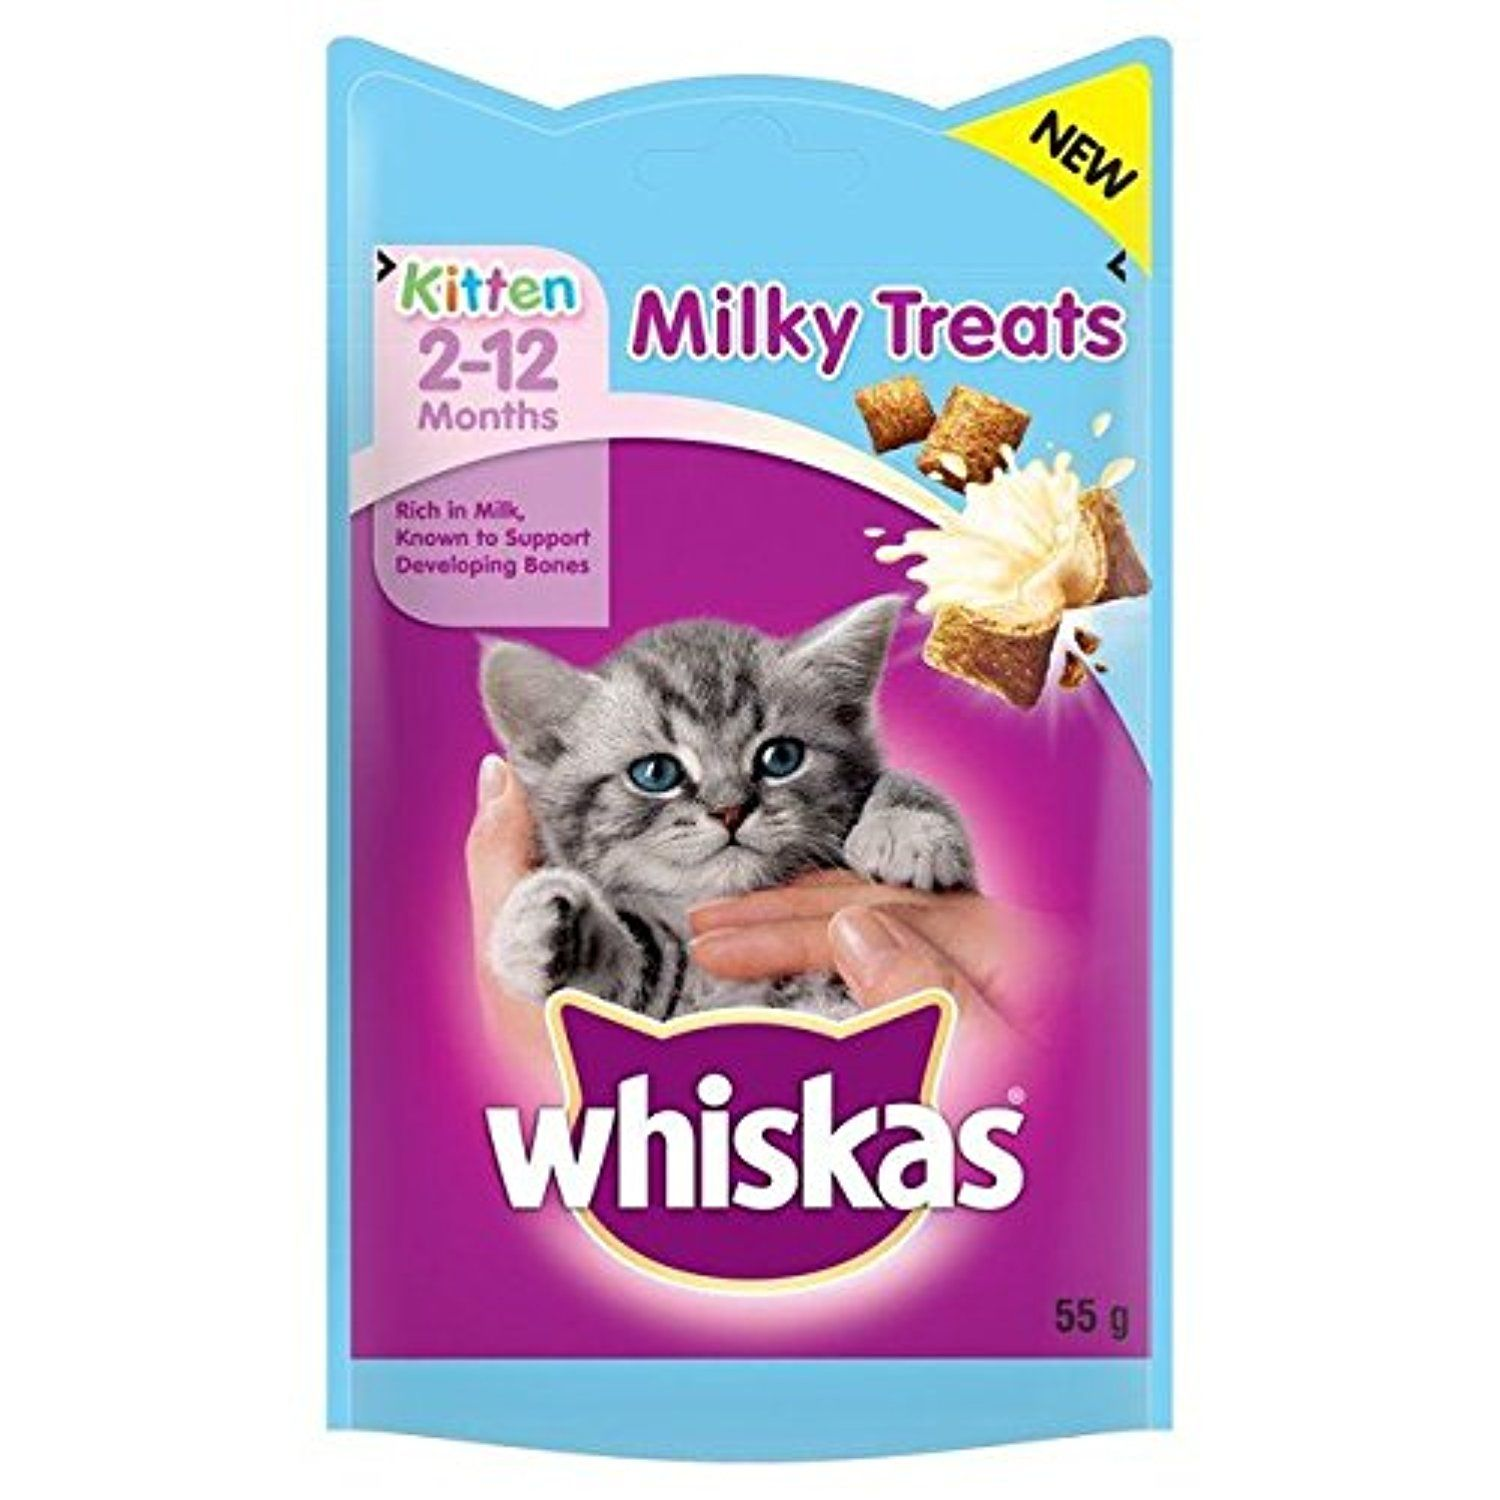 Whiskas Kitten 2 12 Months Milky Treats 55g Pack Of 6 Awesome Products Selected By Anna Churchill Kitten Treats Cat Treats Cat Snacks